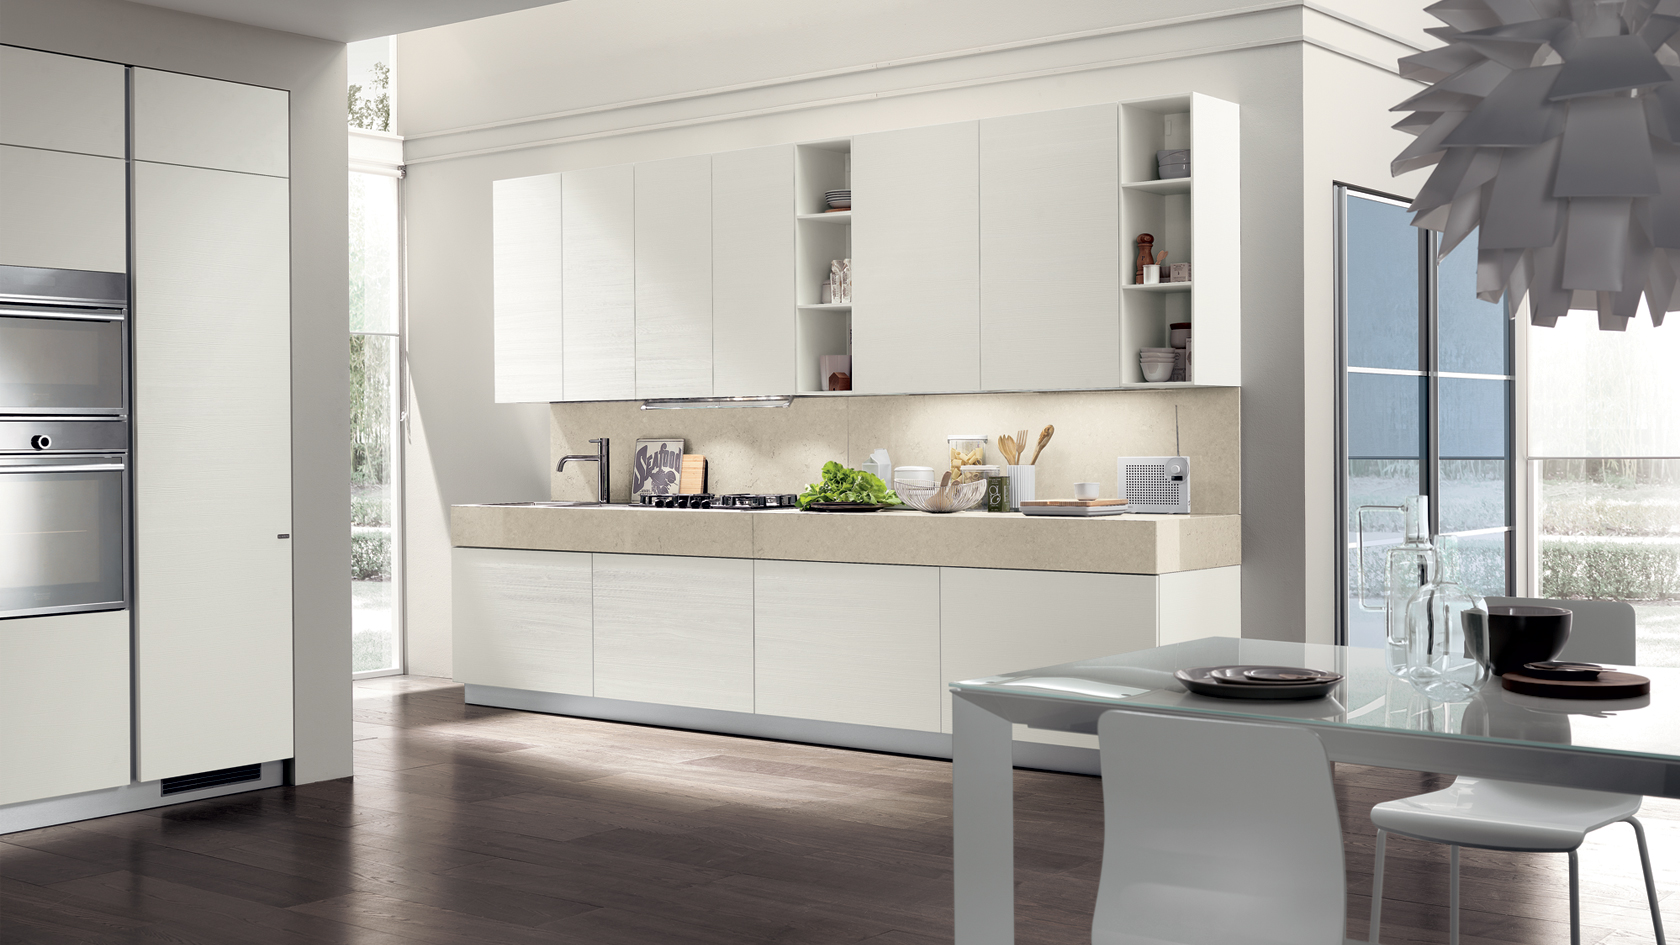 Cucine moderne mobil house mosciano for Cucine rosse moderne